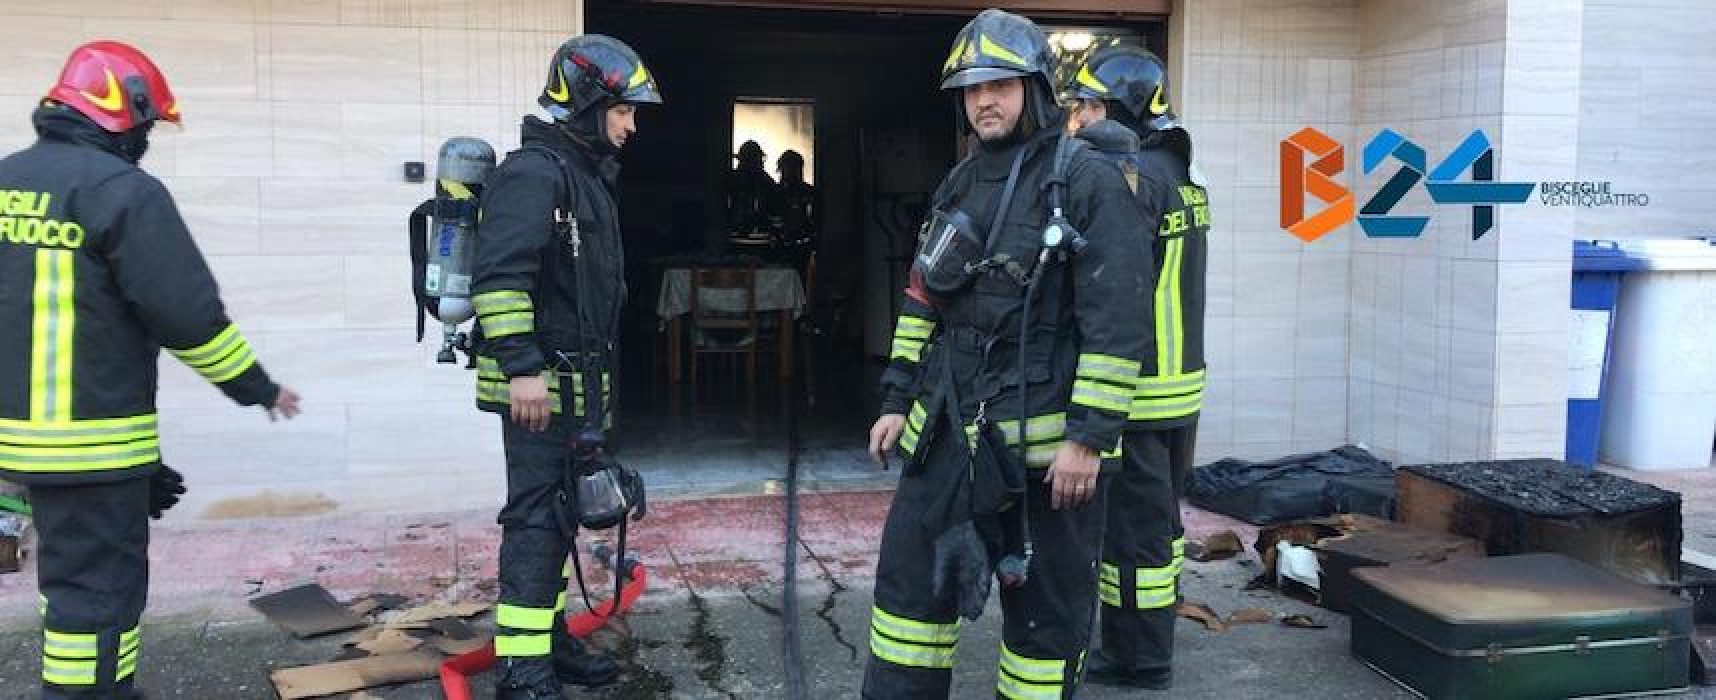 Incendio in un box in via dell'industria